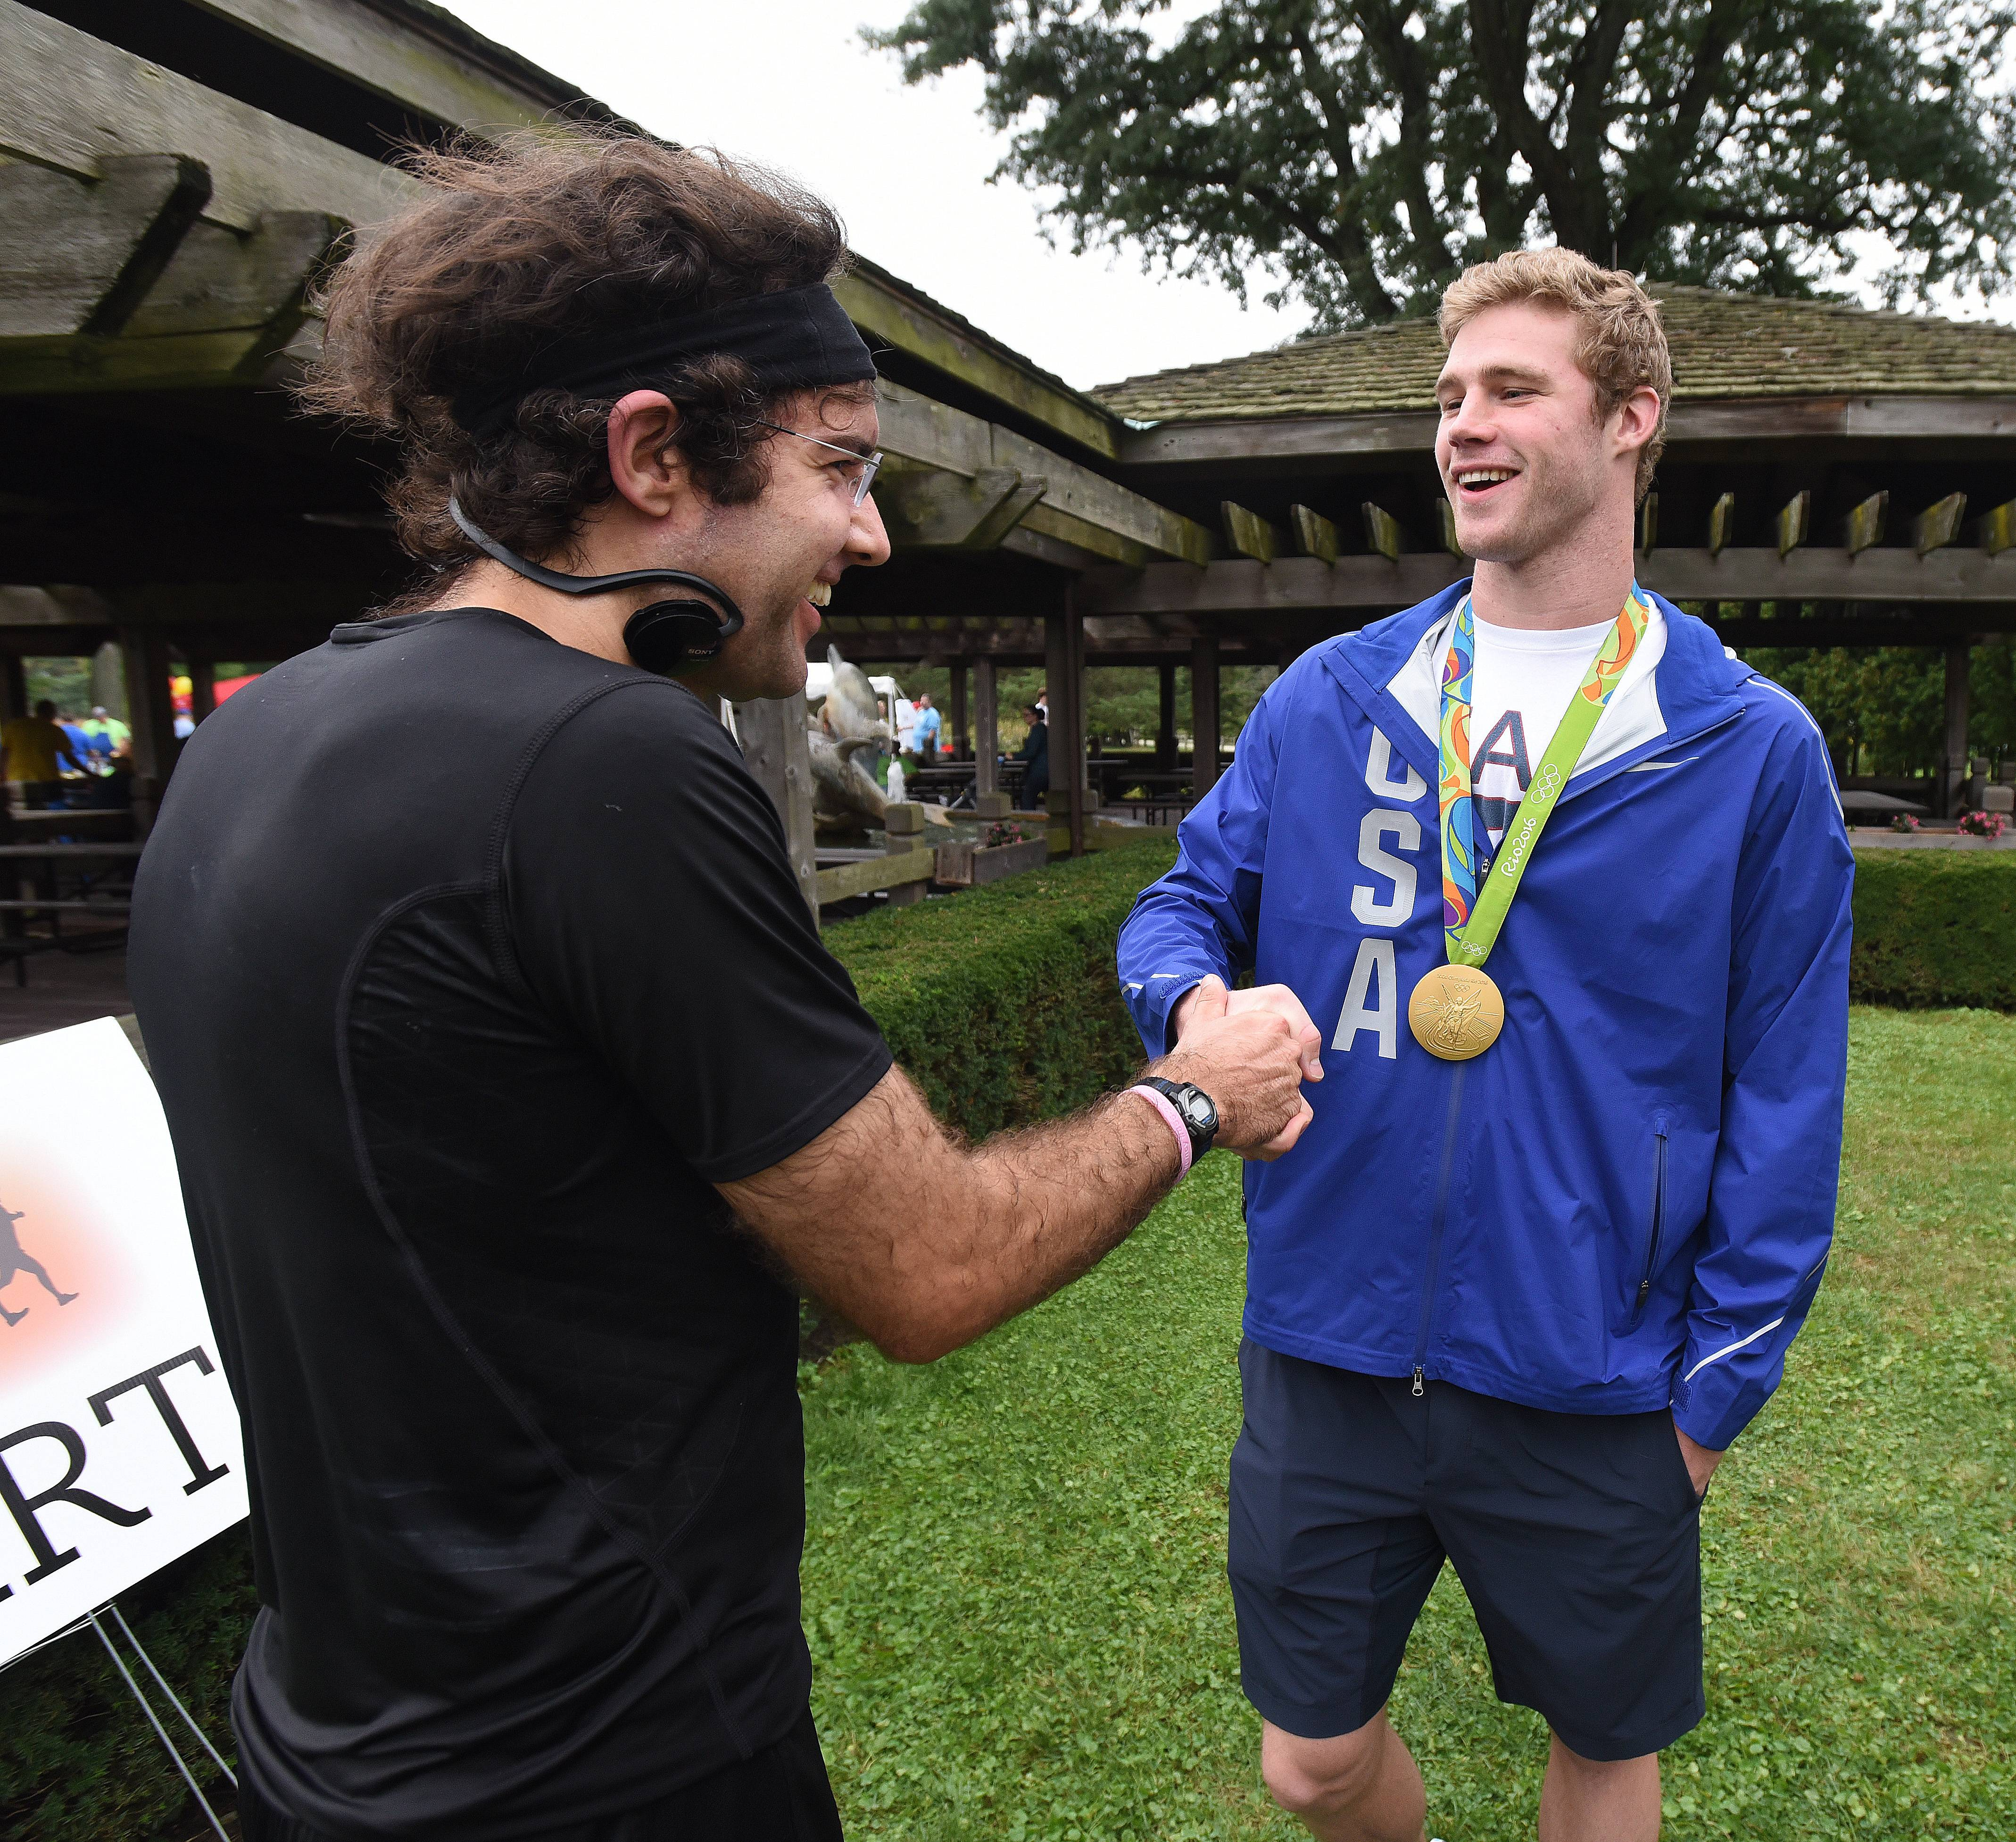 After winning his race, Wes Schoenfeldt of Naperville was congratulated by Olympic swimmer Kevin Cordes during Saturday's Run for the Mind at St. James Farm near Warrenville.